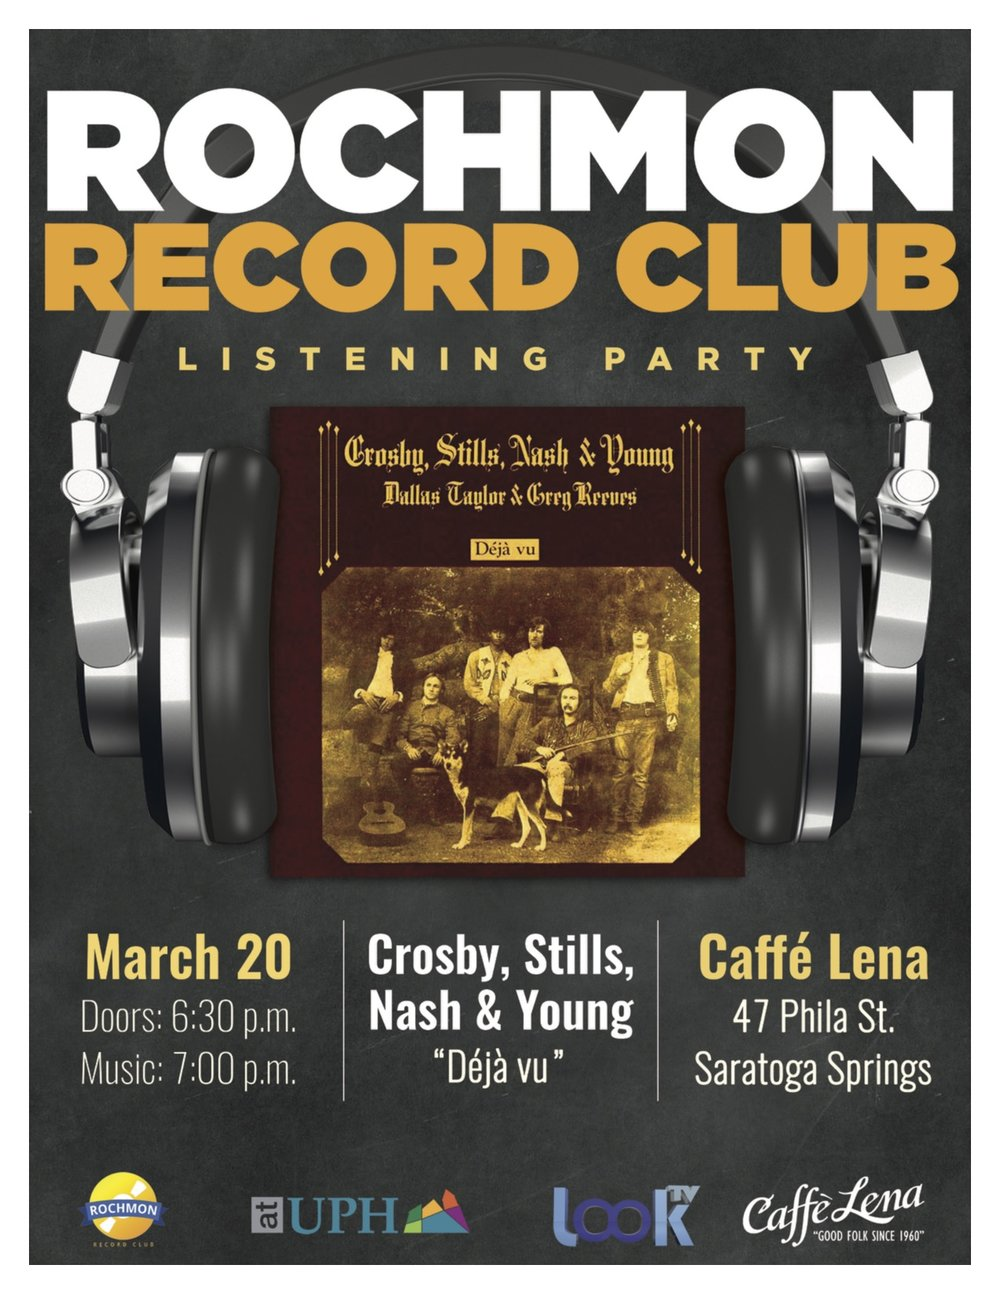 RochmonRecordClub_8.5x11_March2018.jpg